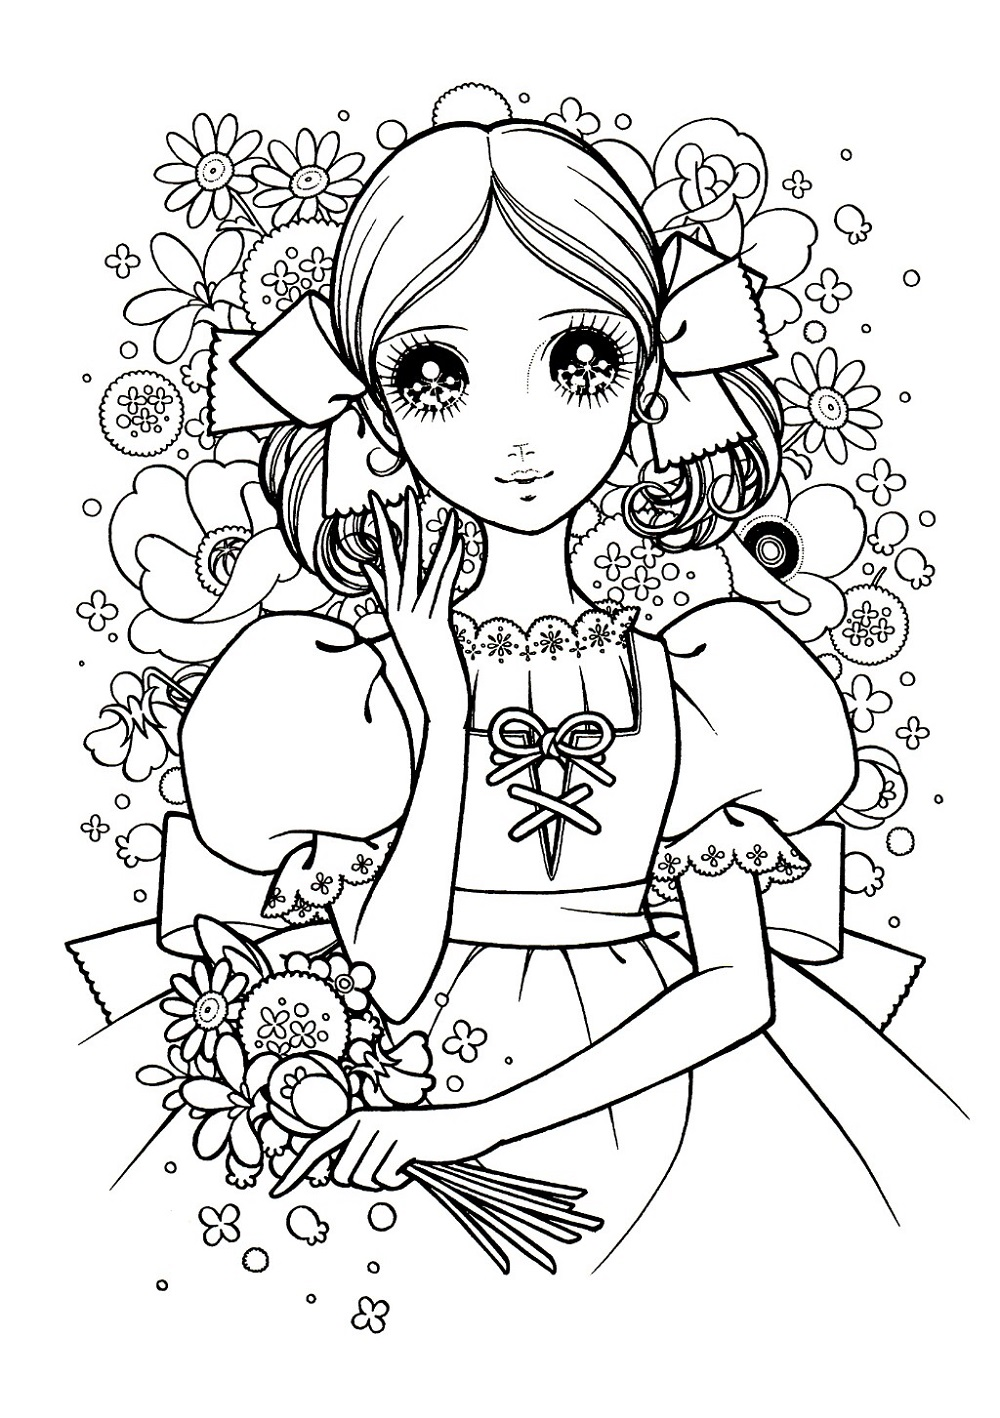 Online Coloring Pages for Kids Anime